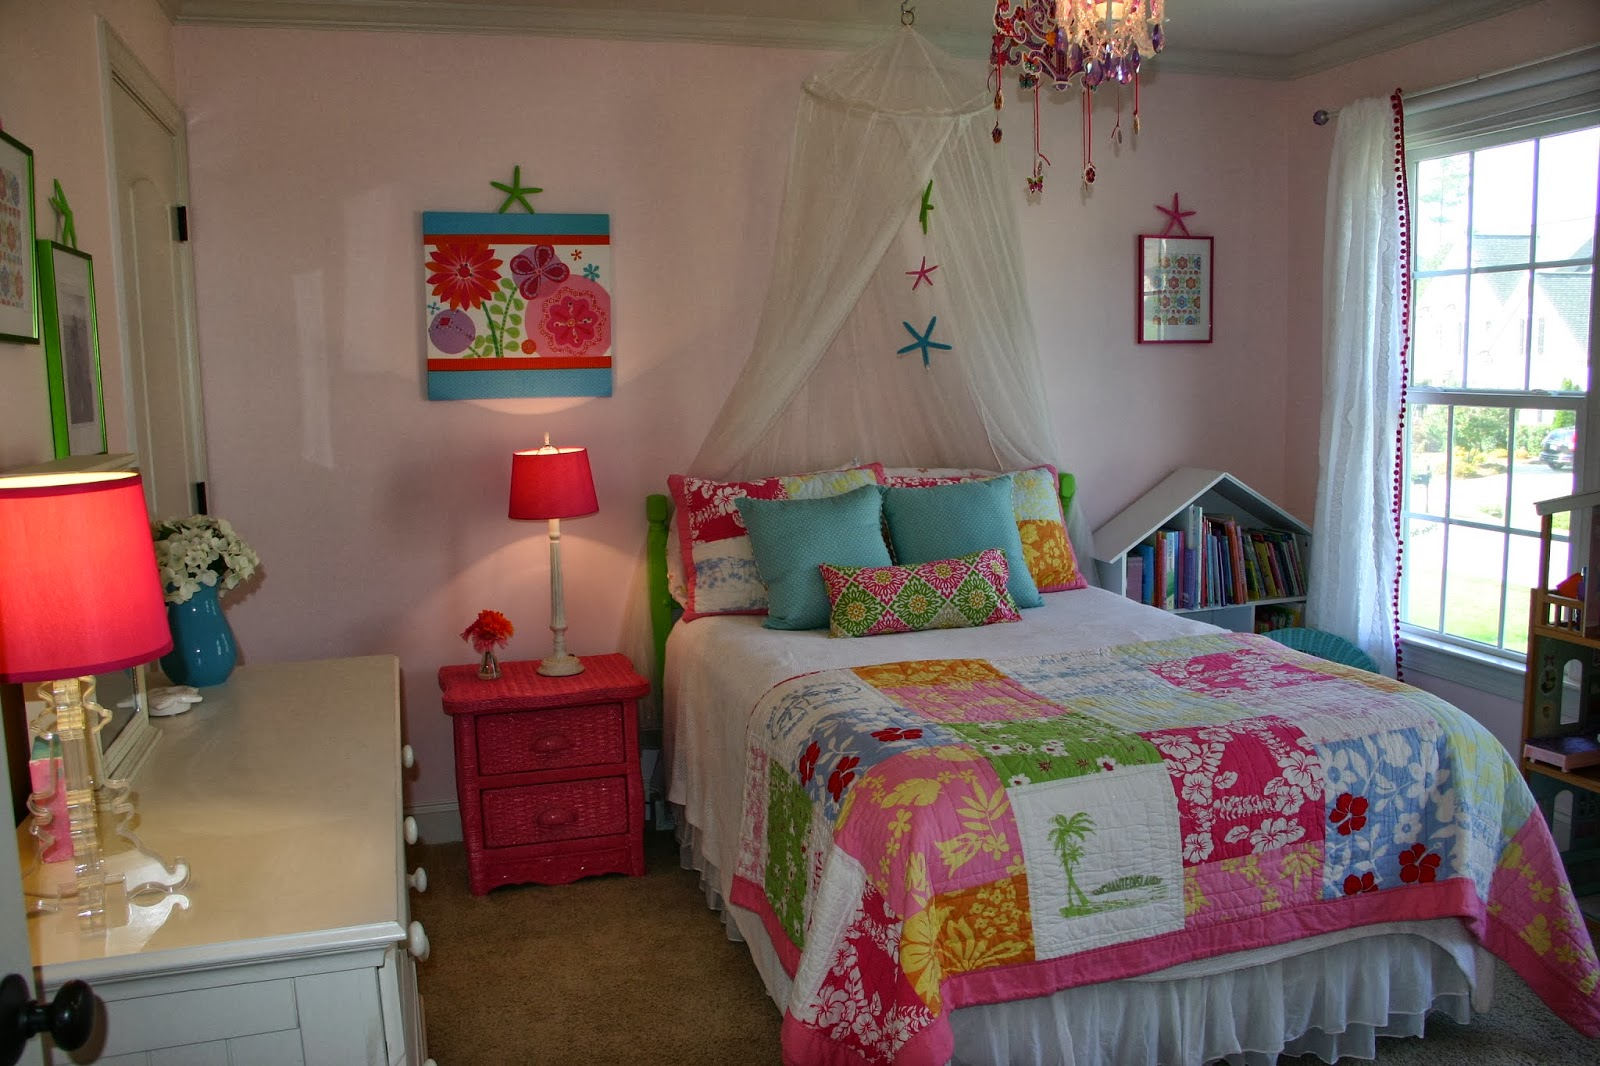 Cottage blue designs spiced up room for a sparkly girl for 8 year old bedroom ideas